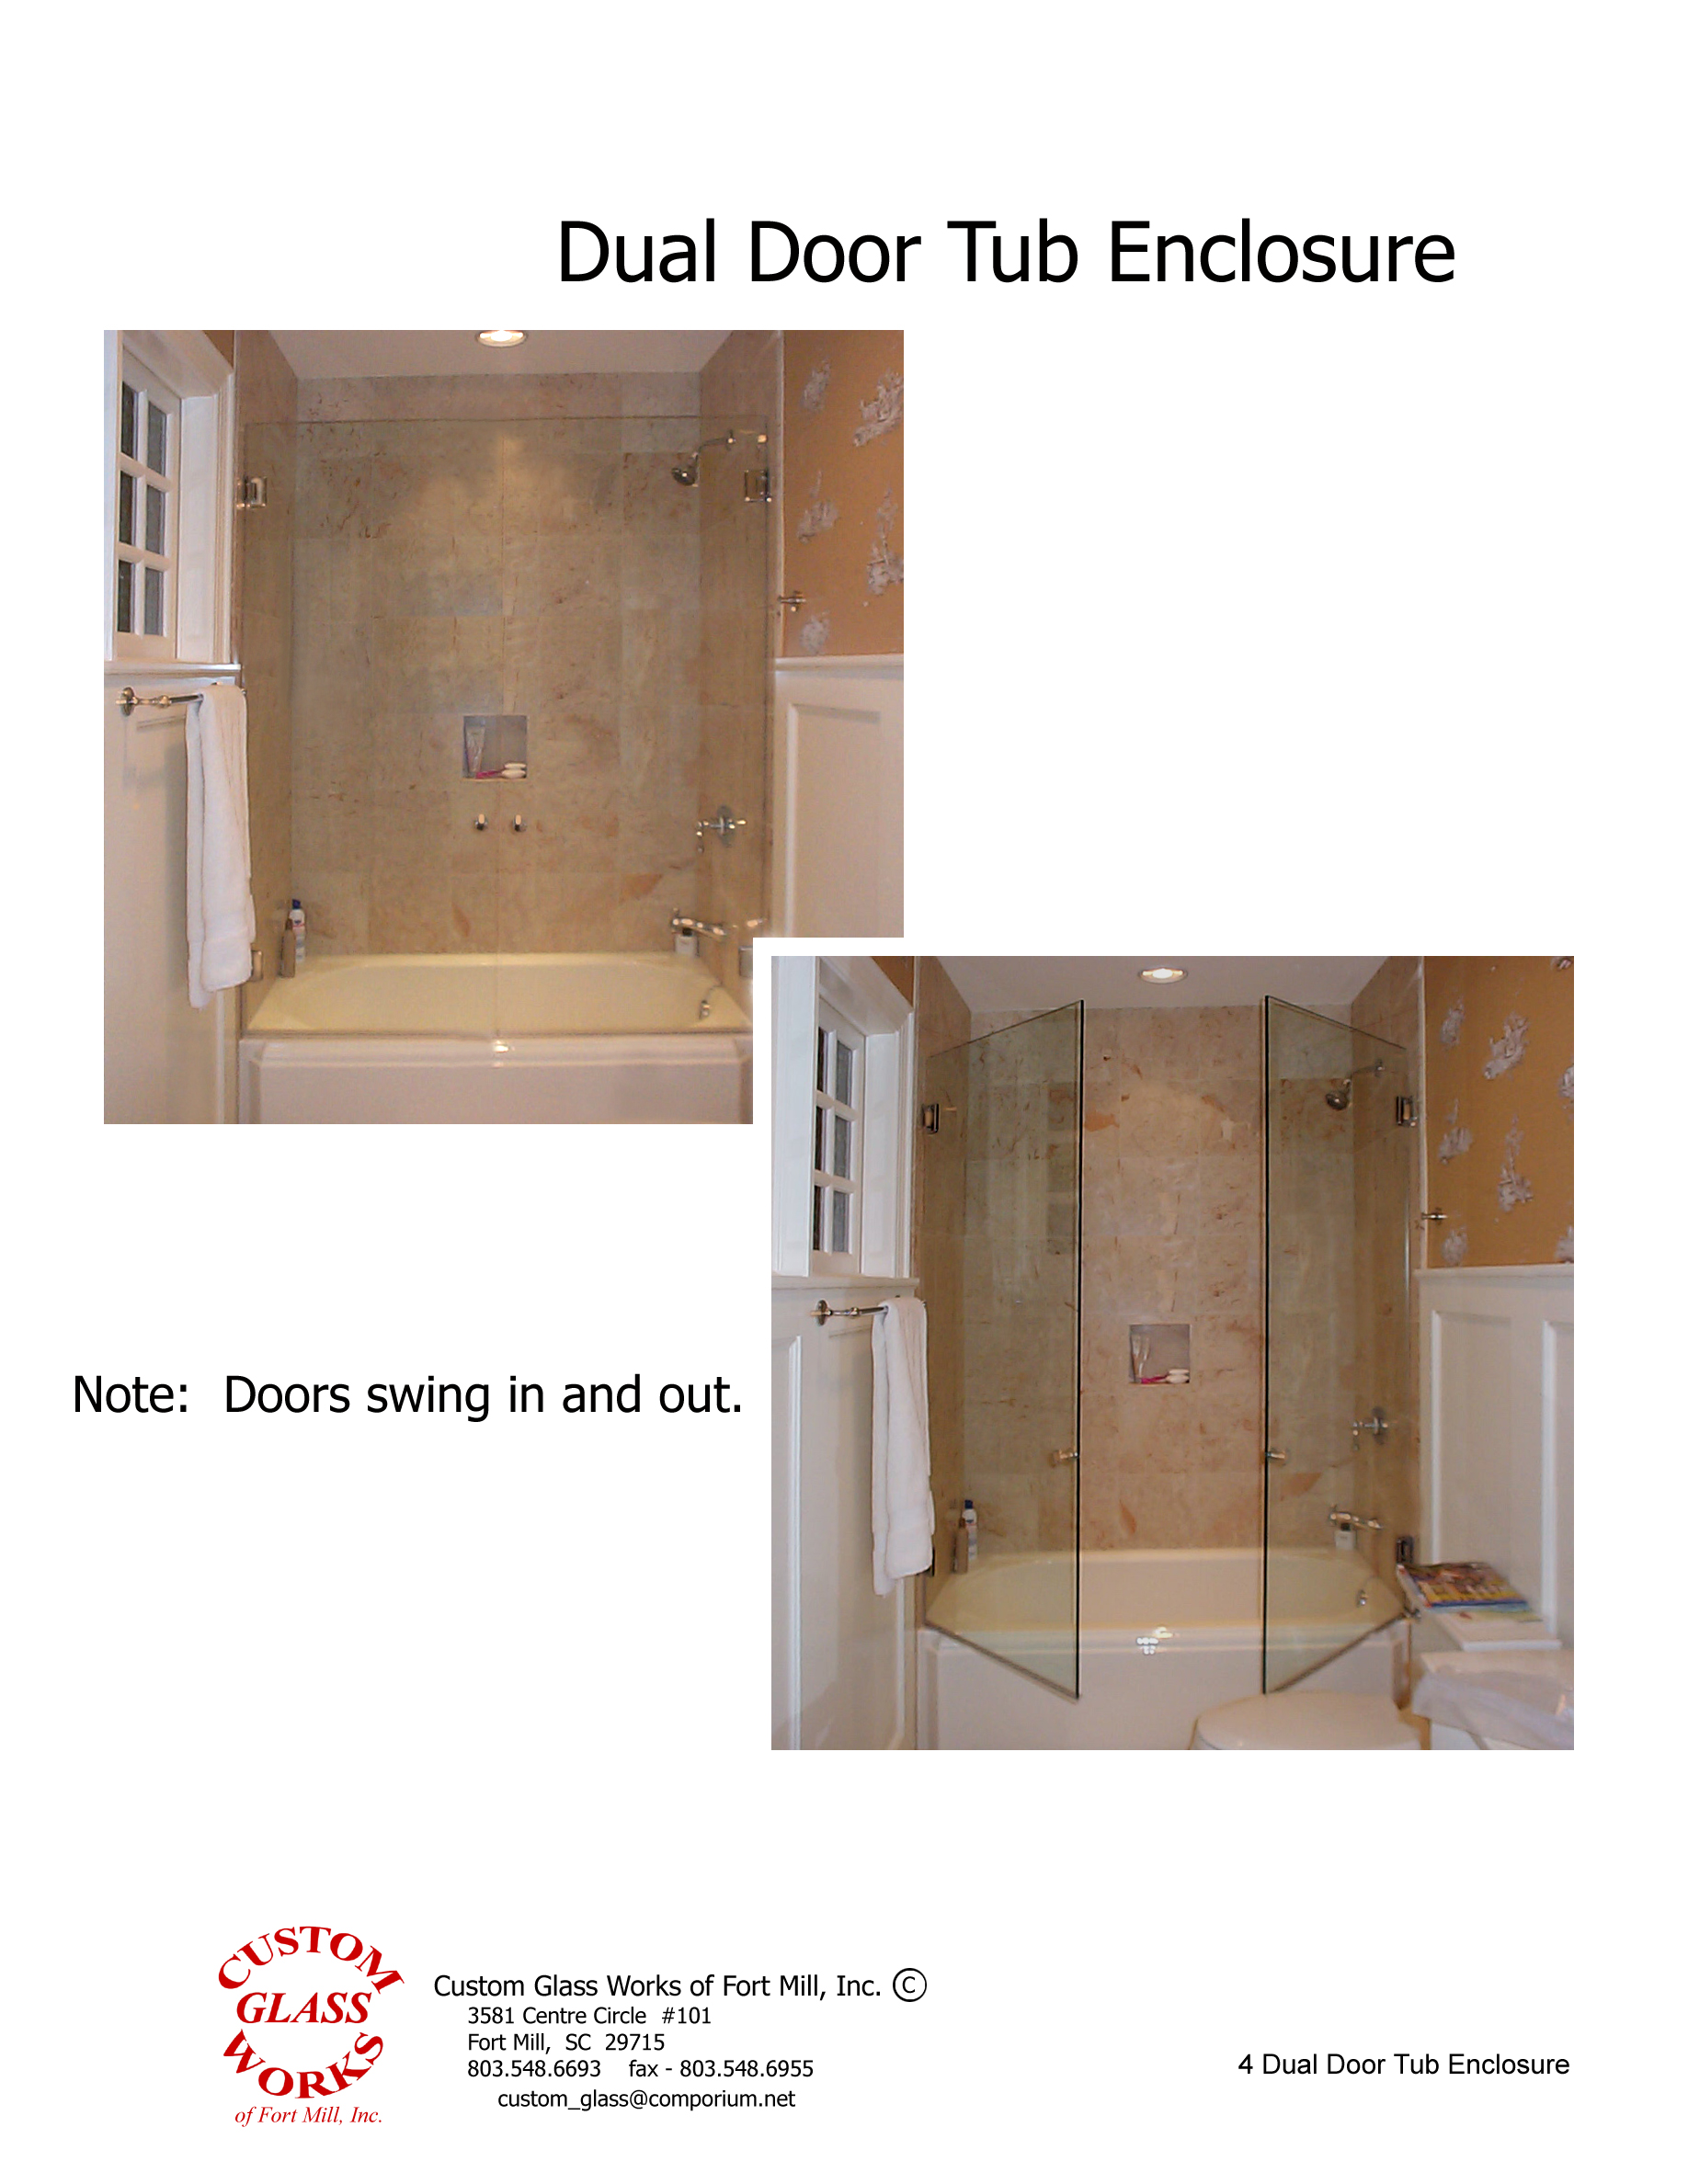 4 Dual Door Tub Enclosure